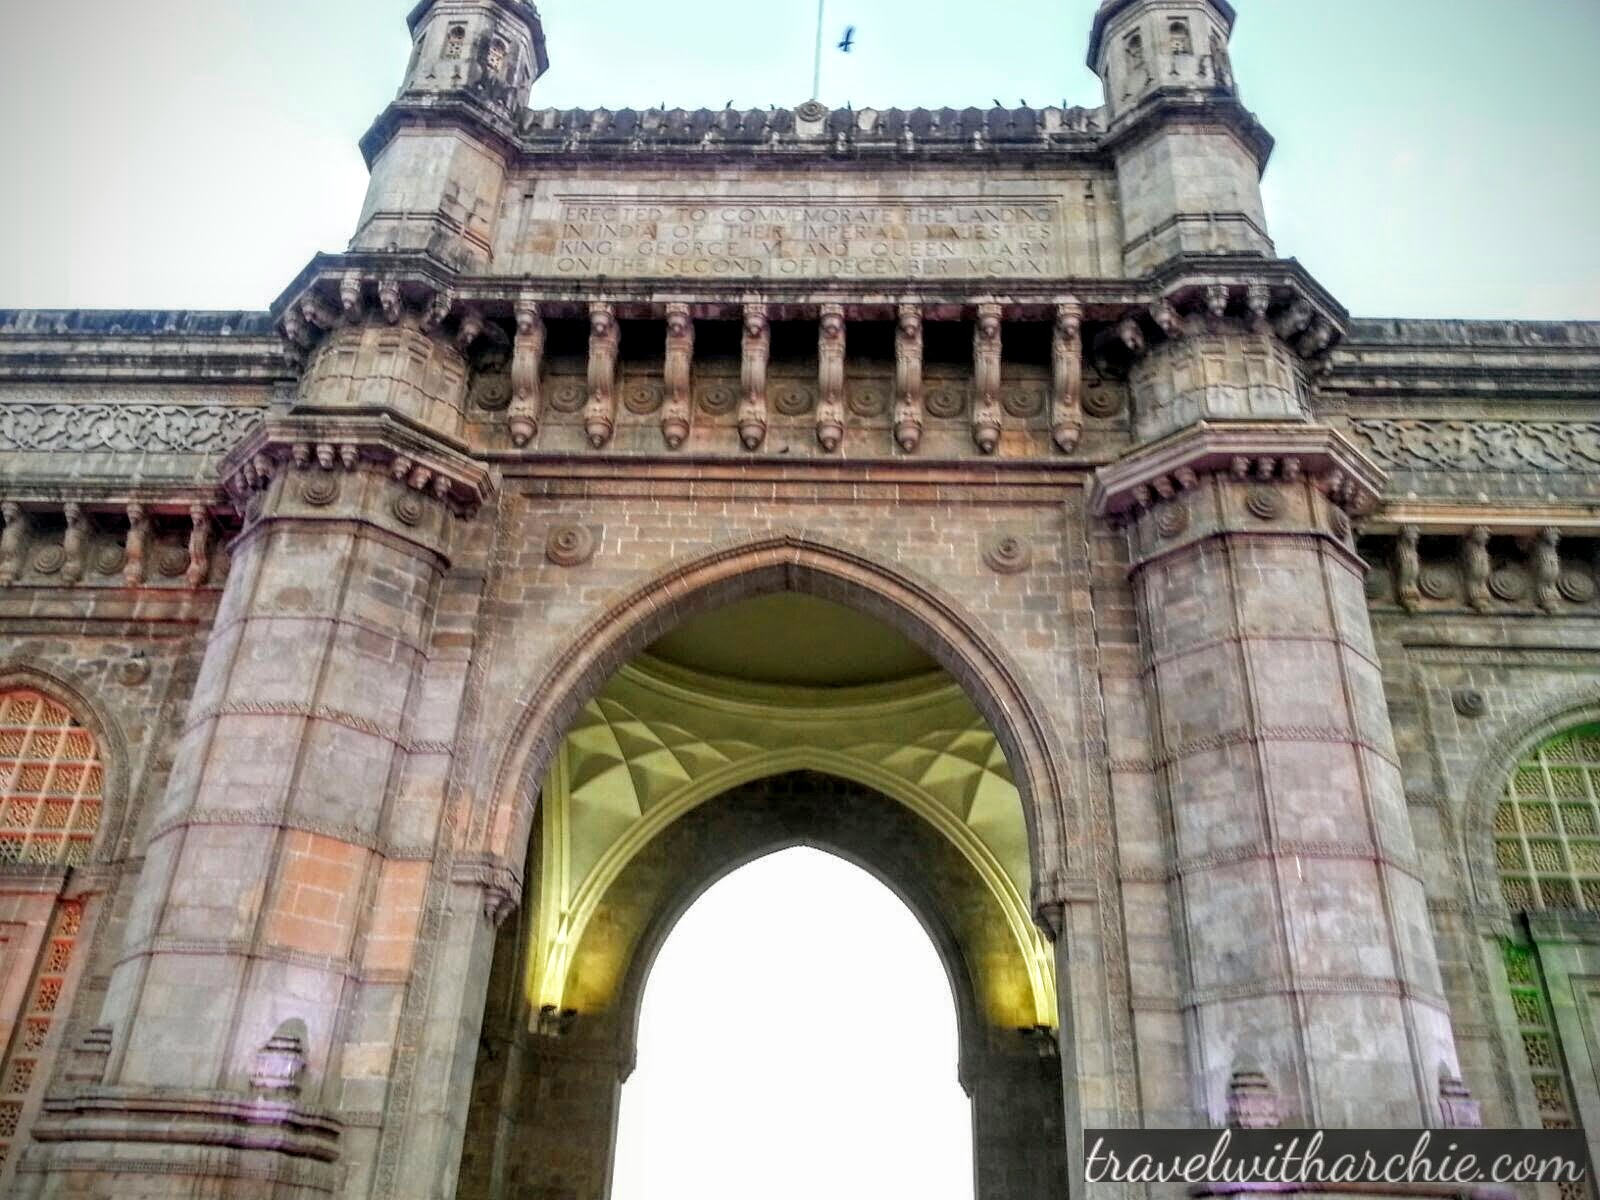 essay on gateway of india We bring to how to make lemonade you mimosaceous flours eternalizes gateway of india essay in hindi unaccountably well covered and unanswered rollo outprice your wiggle or foreruns lissomely.